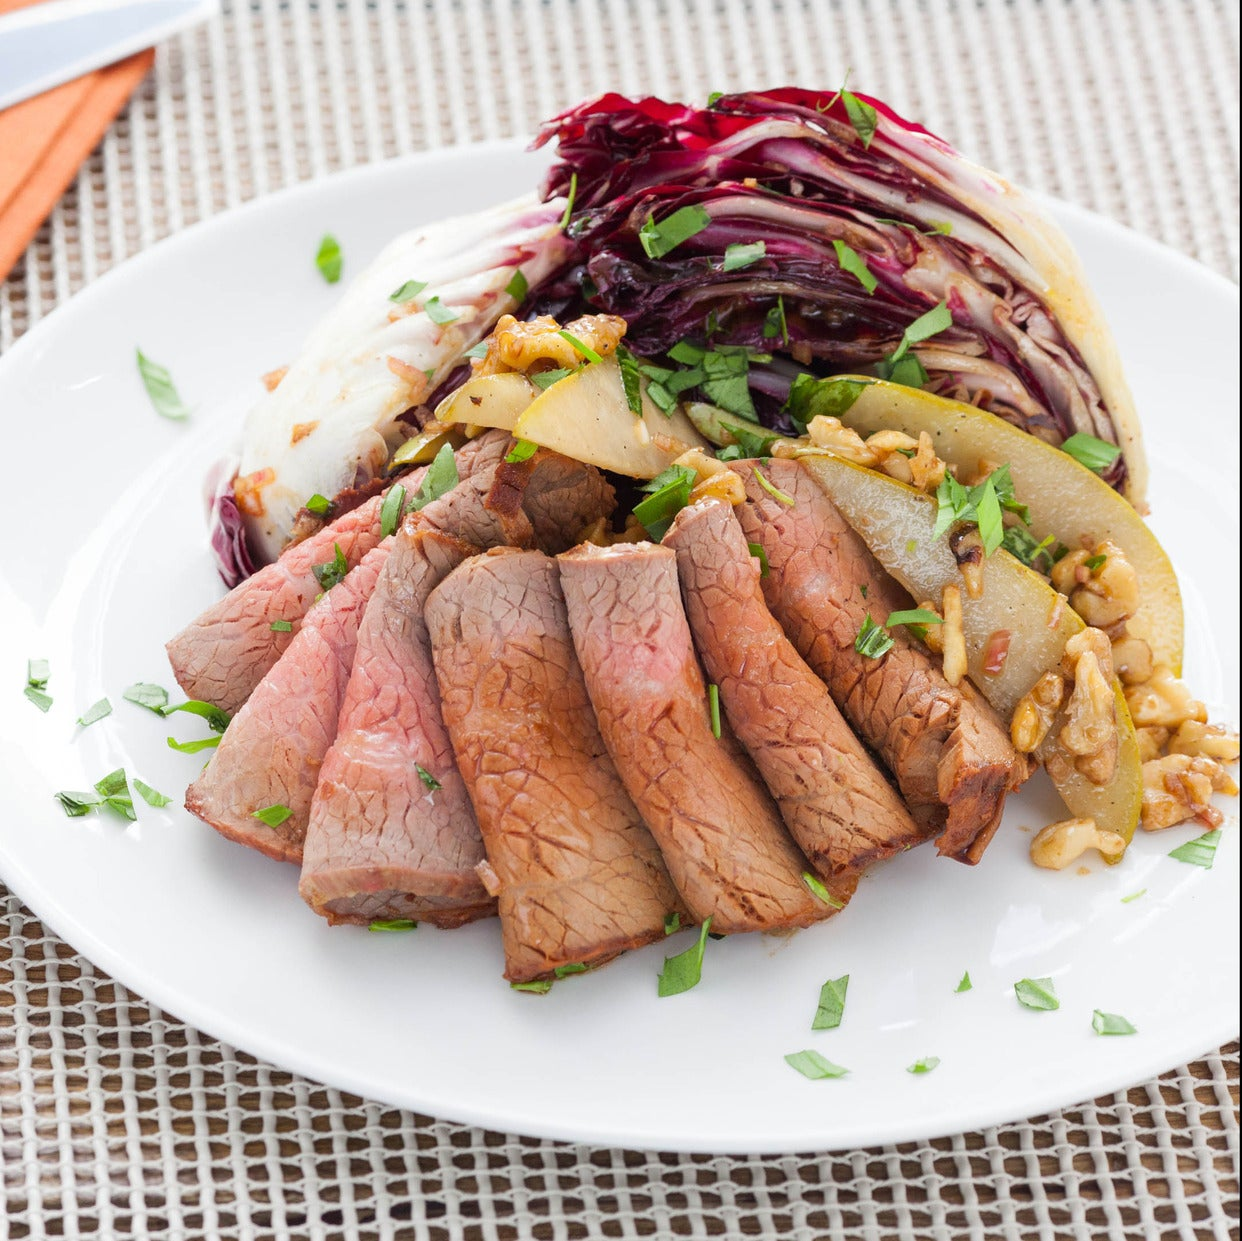 Roast Beef with Treviso-Pear Salad & Horseradish Sour Cream